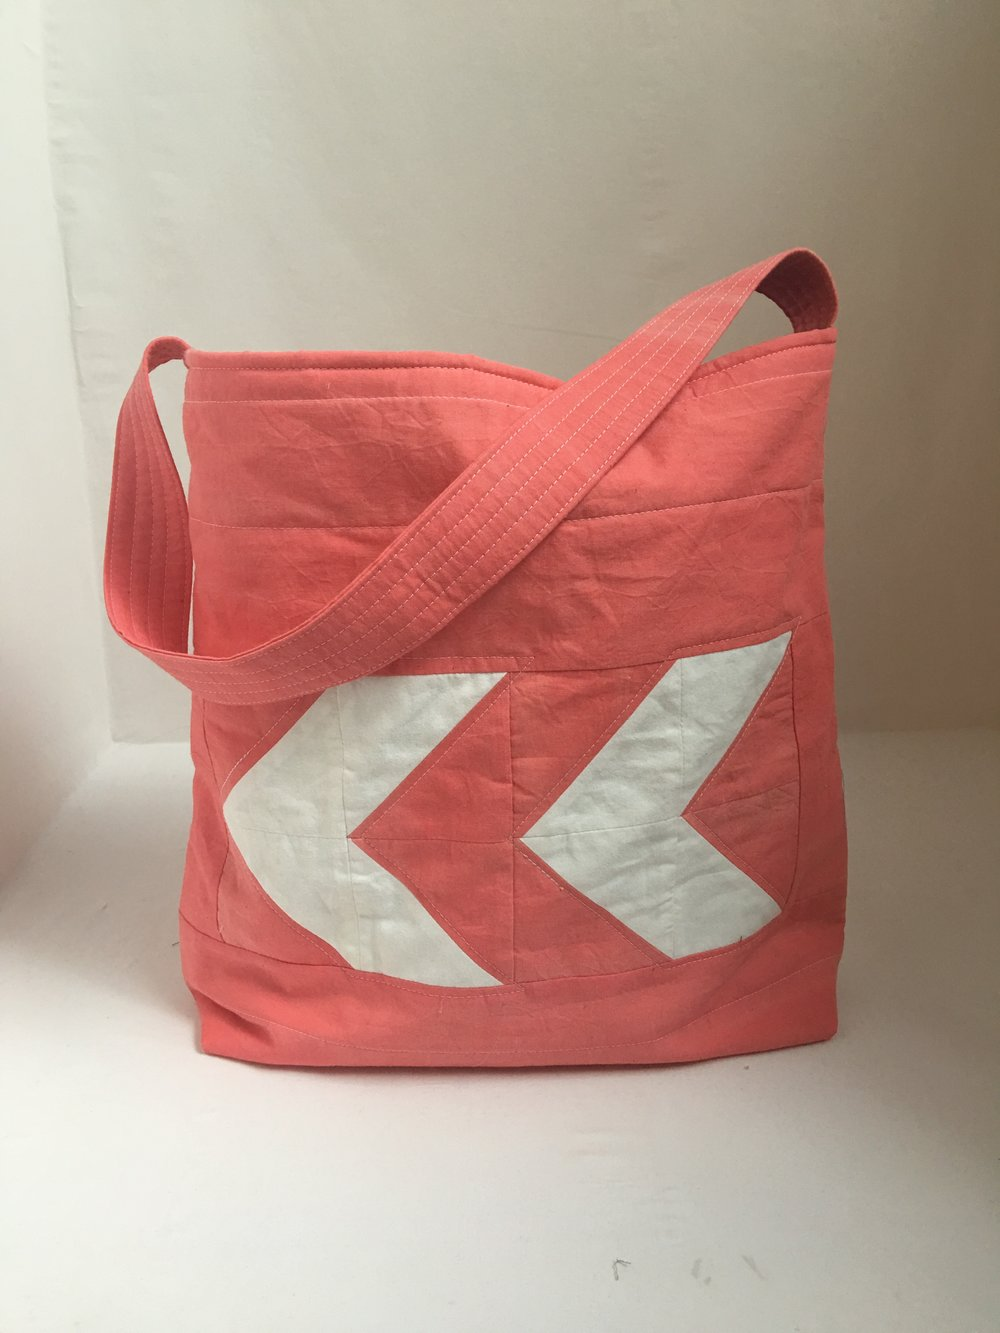 pink and white quilted shoulder bag that i made last week, maybe my current favorite??